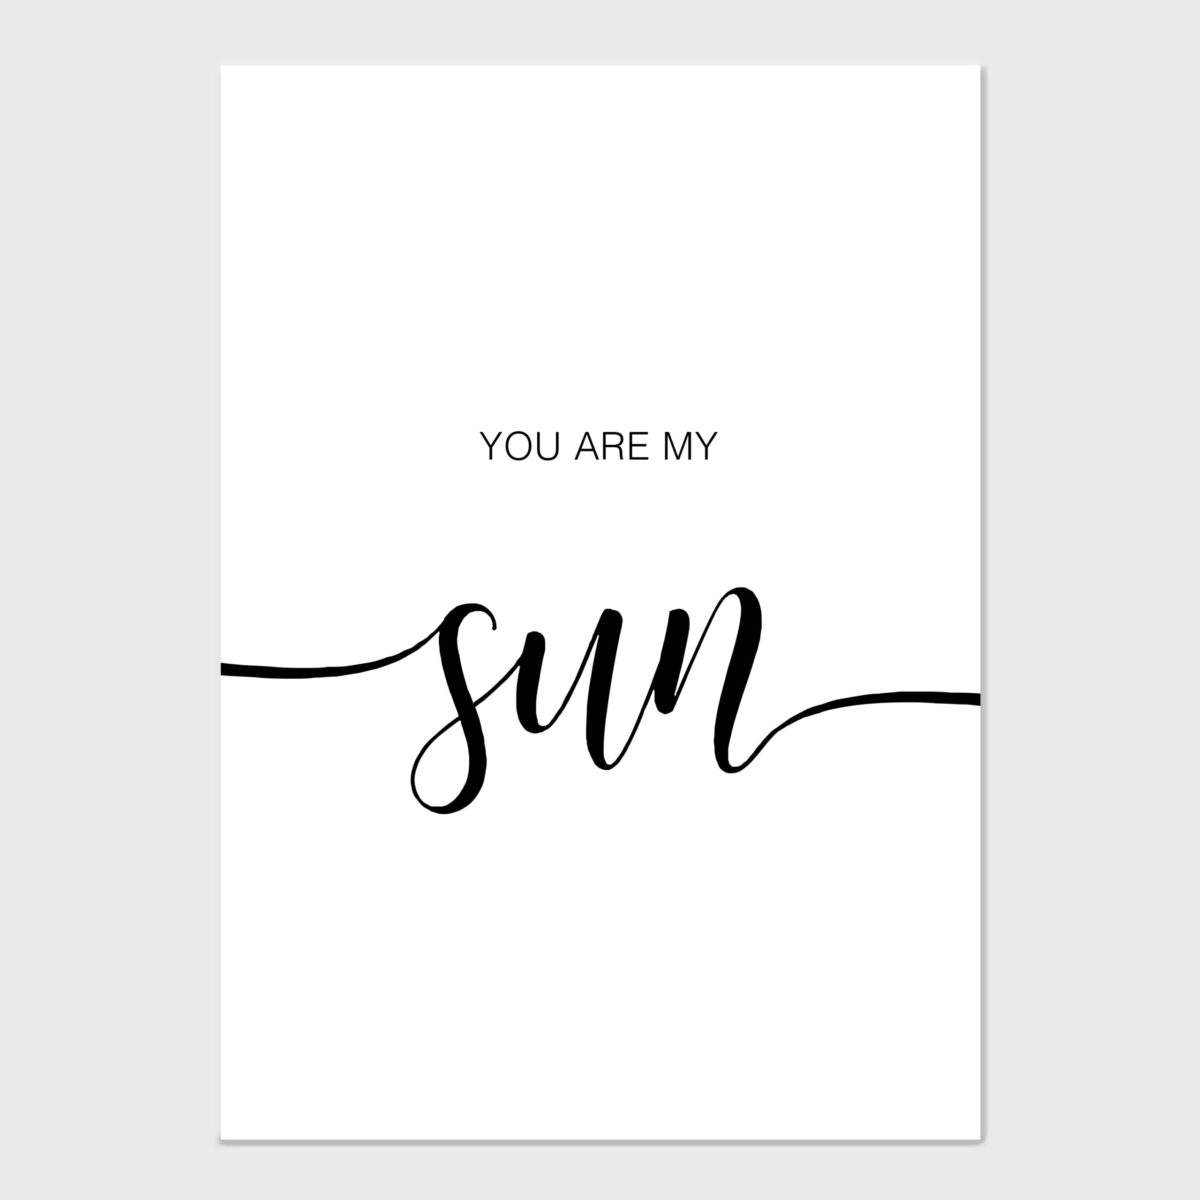 You are my sun – No Frame